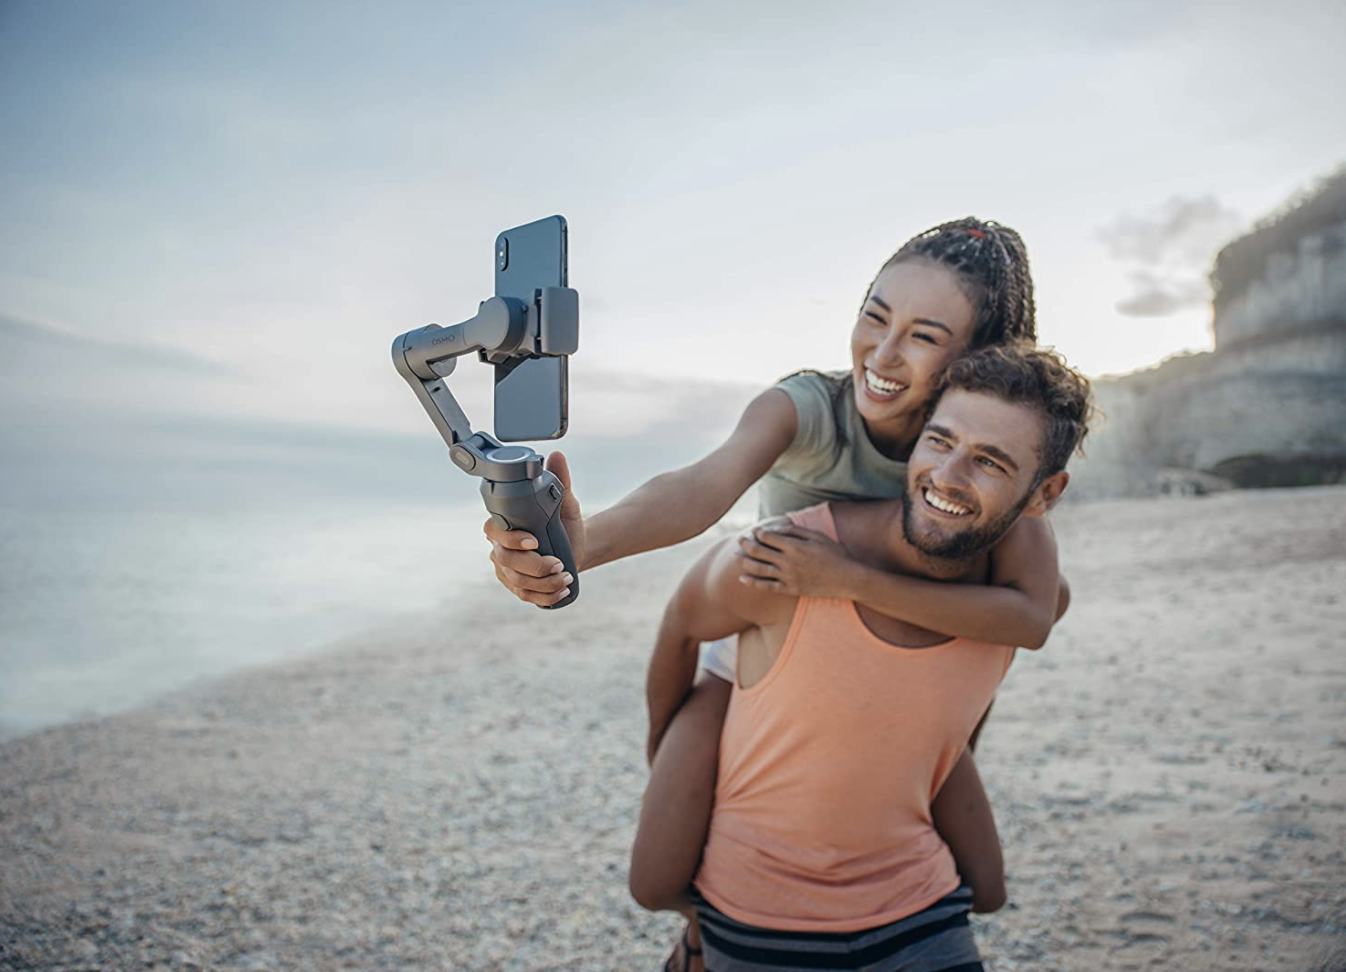 Man holding woman on back, while she films them using phone-holding device.